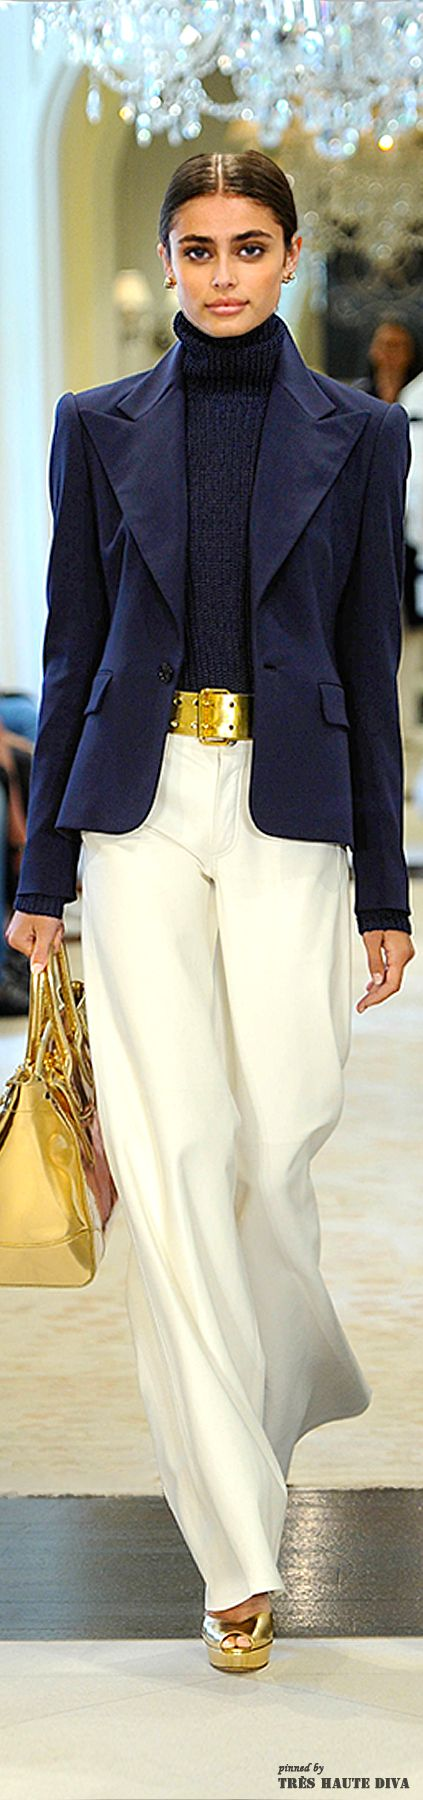 Ralph Lauren Resort 2015| Keep The Glamour ♡ ✤ LadyLuxury ✤. Love this classic look - timeless, TG